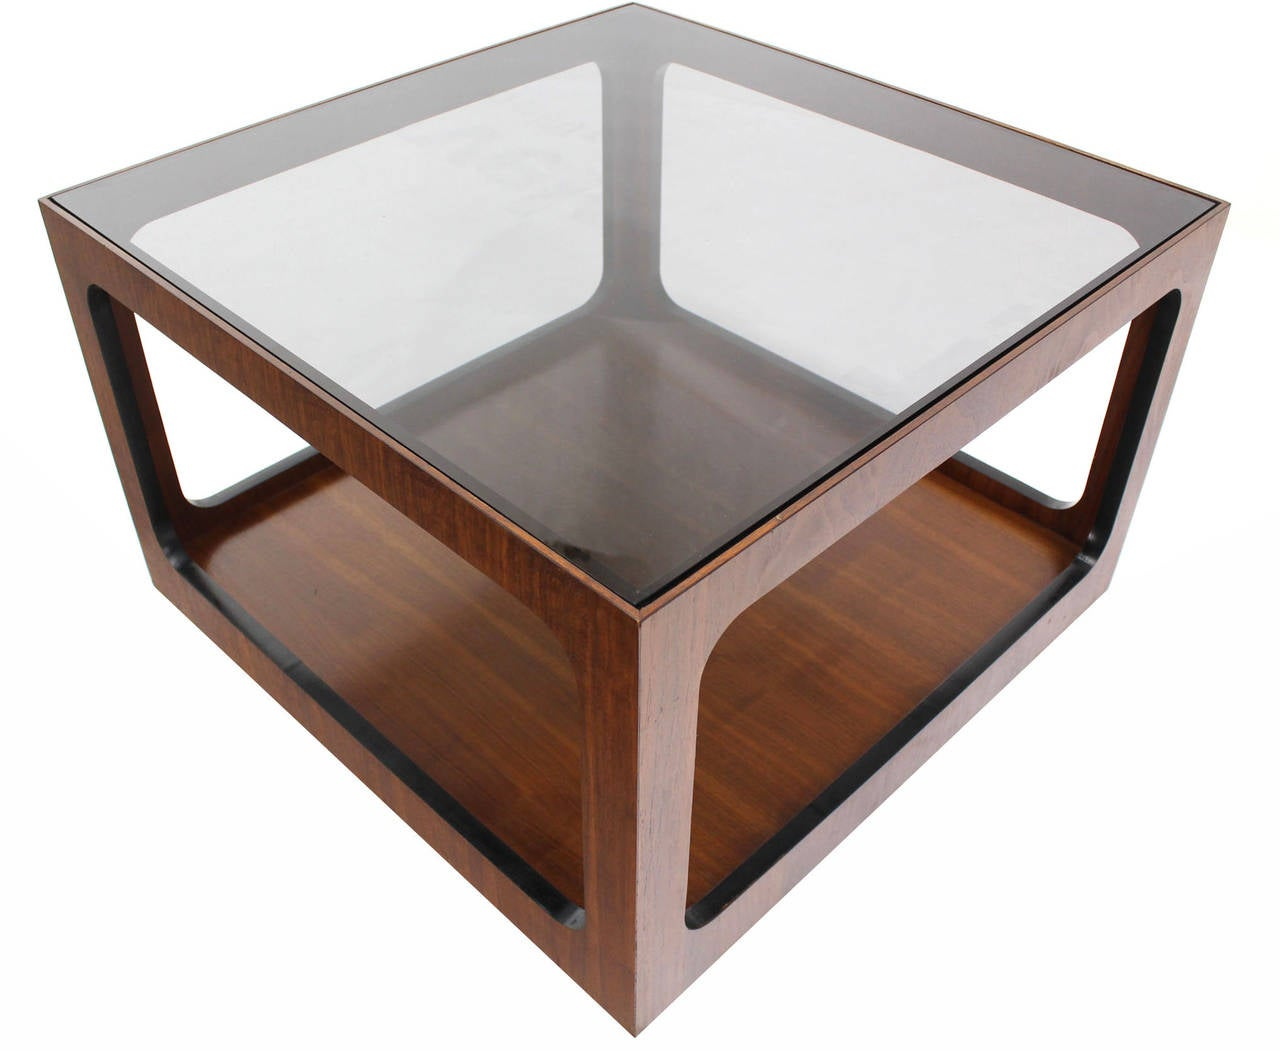 square walnut base and glass top coffee or side table for. Black Bedroom Furniture Sets. Home Design Ideas